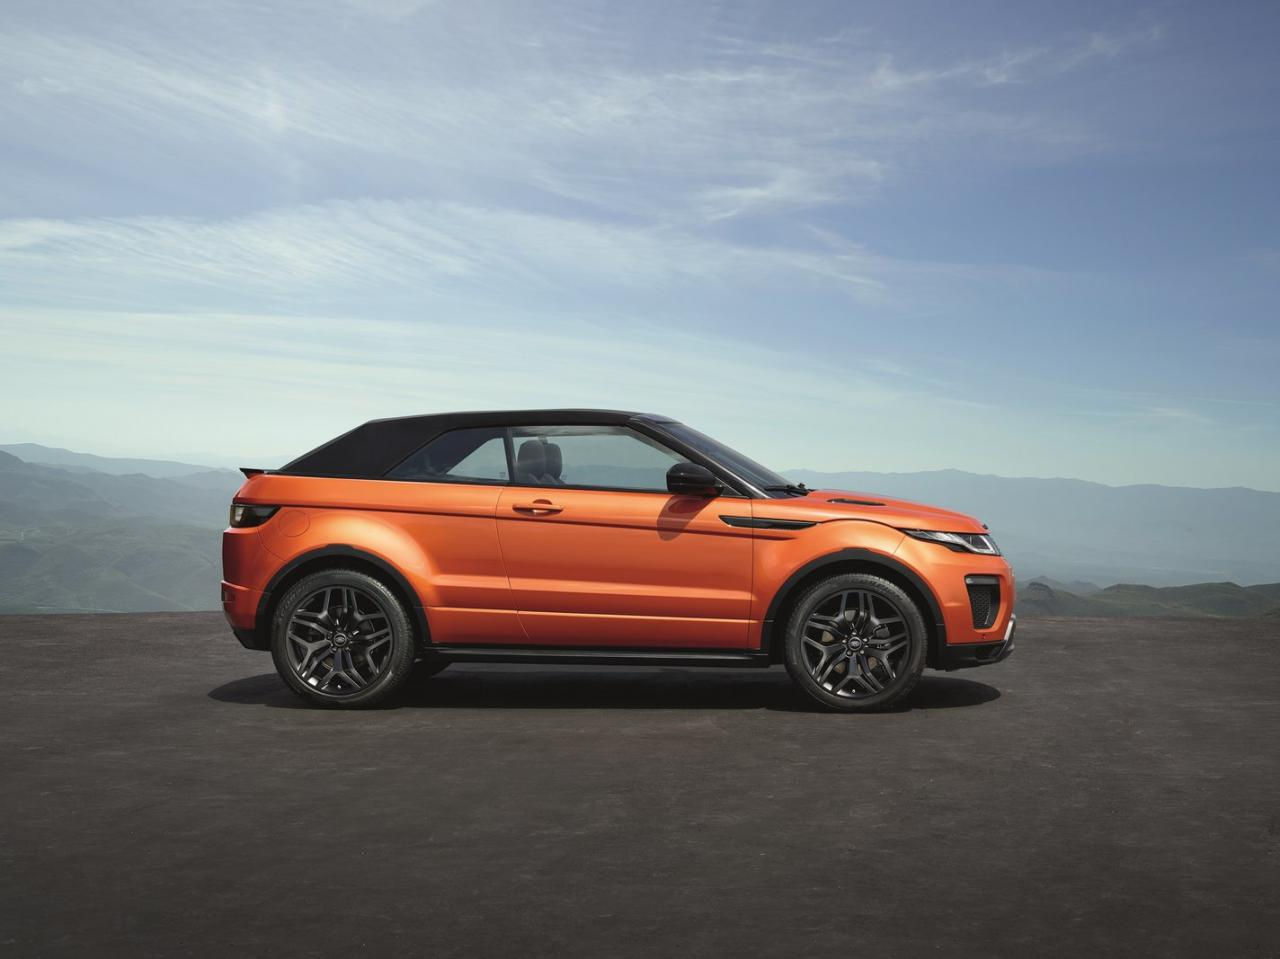 2018 Land Rover Evoque Convertible Suv Launched In India Price And